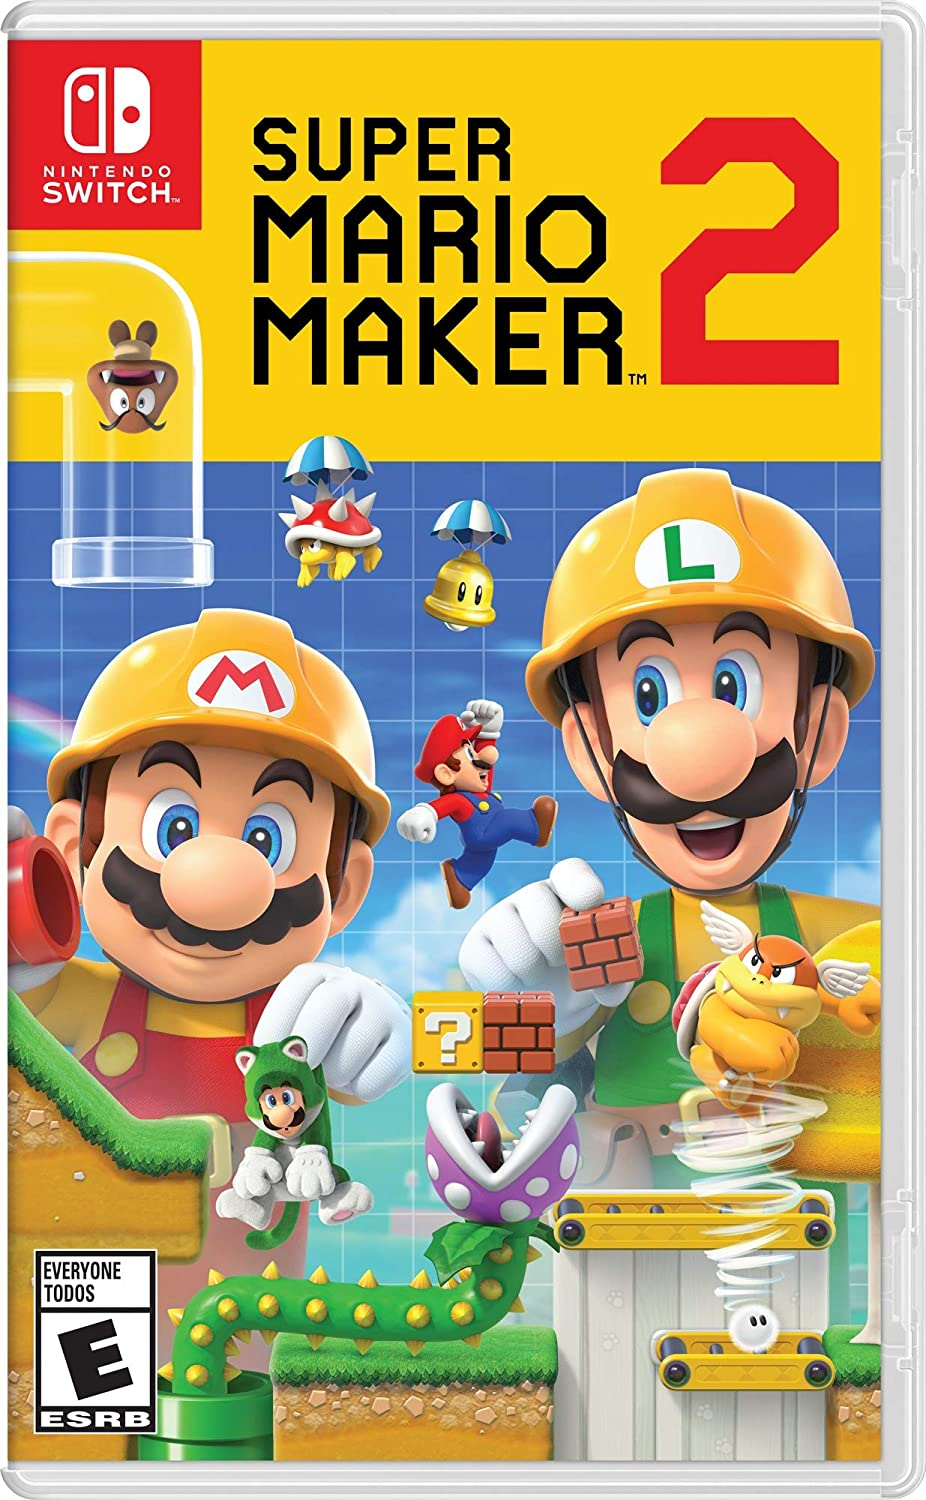 Amazon.com: Super Mario Maker 2 - Nintendo Switch [Digital ...